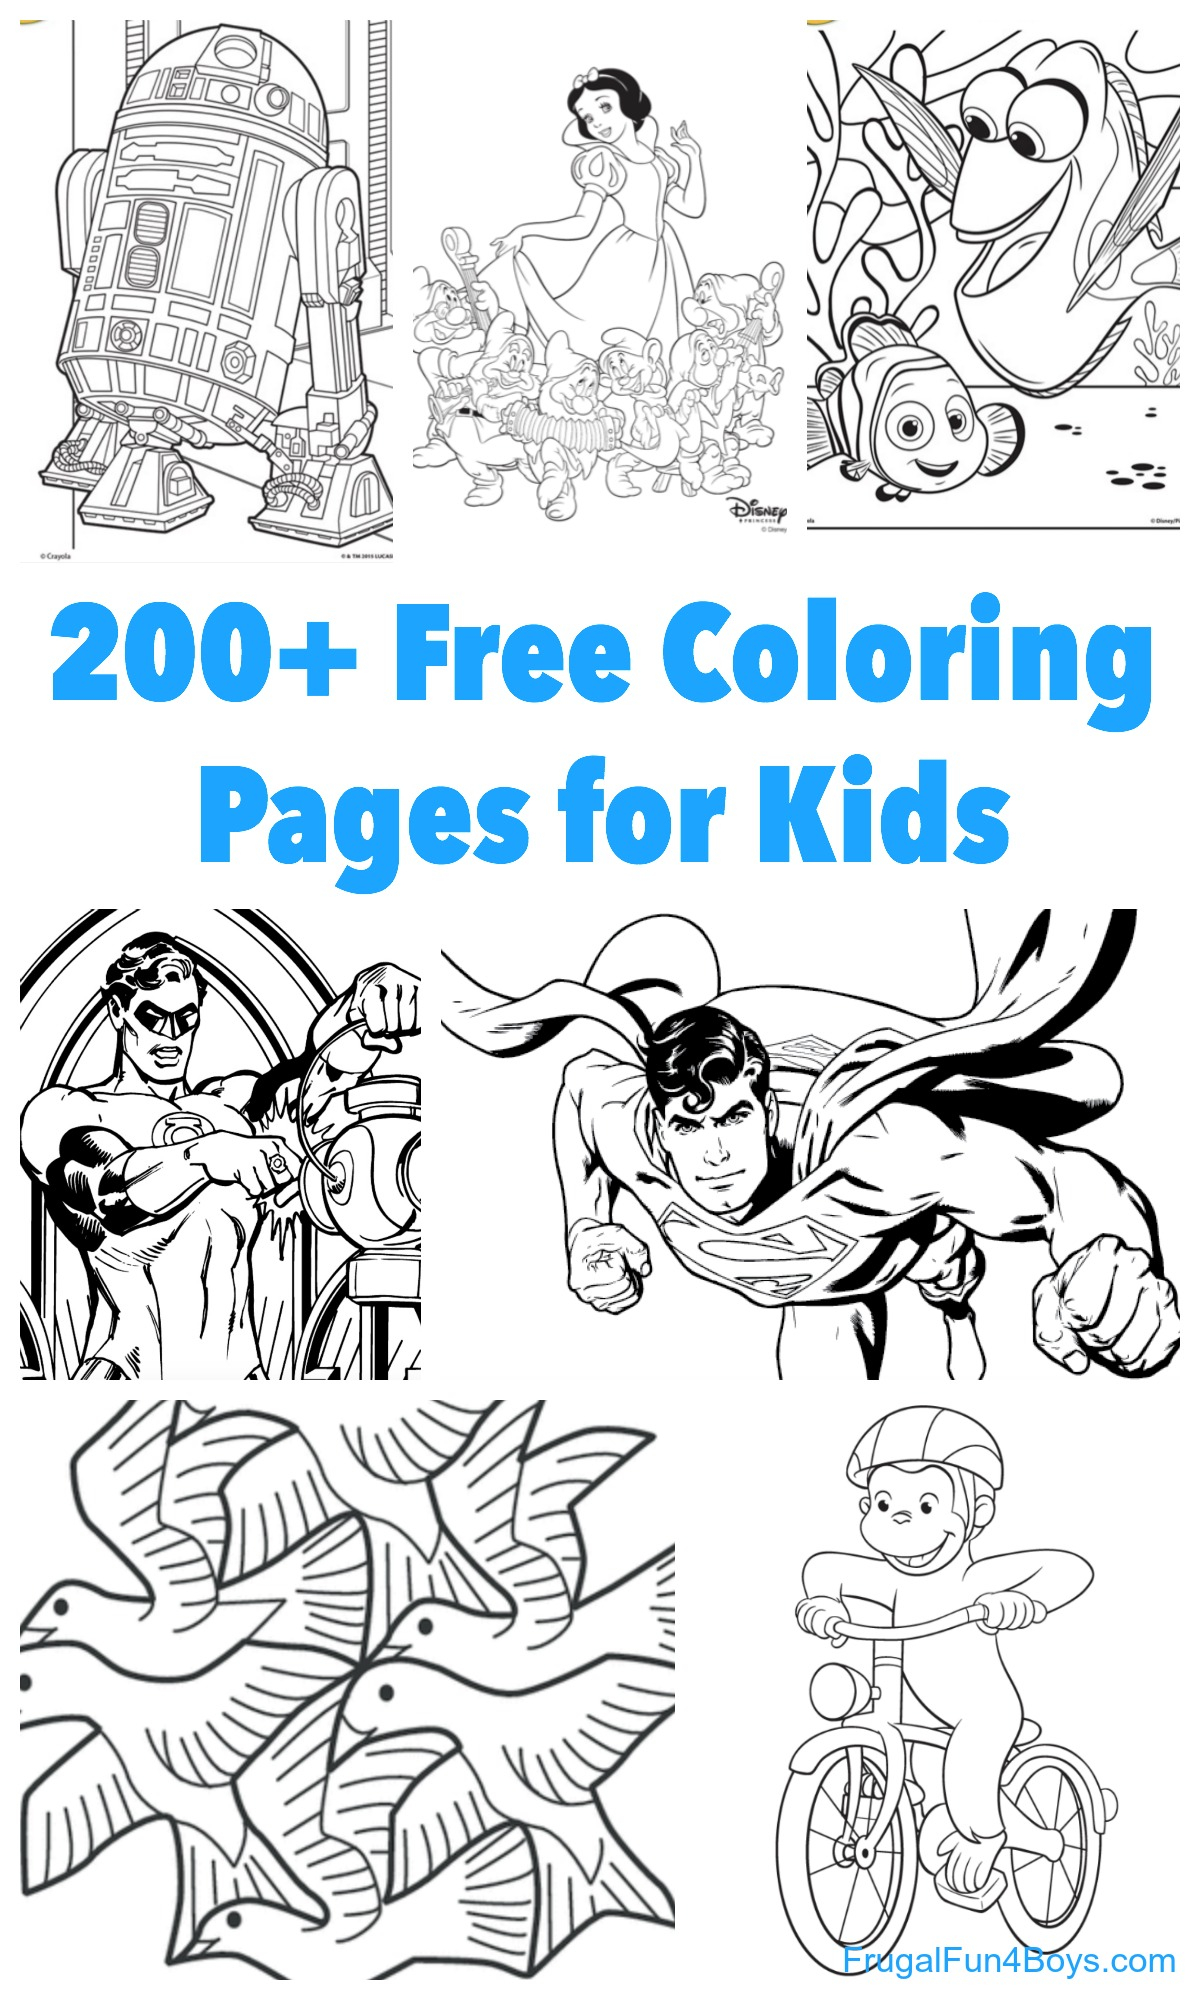 Printable Coloring Pages For Girls 200 Printable Coloring Pages For Kids Frugal Fun For Boys And Girls